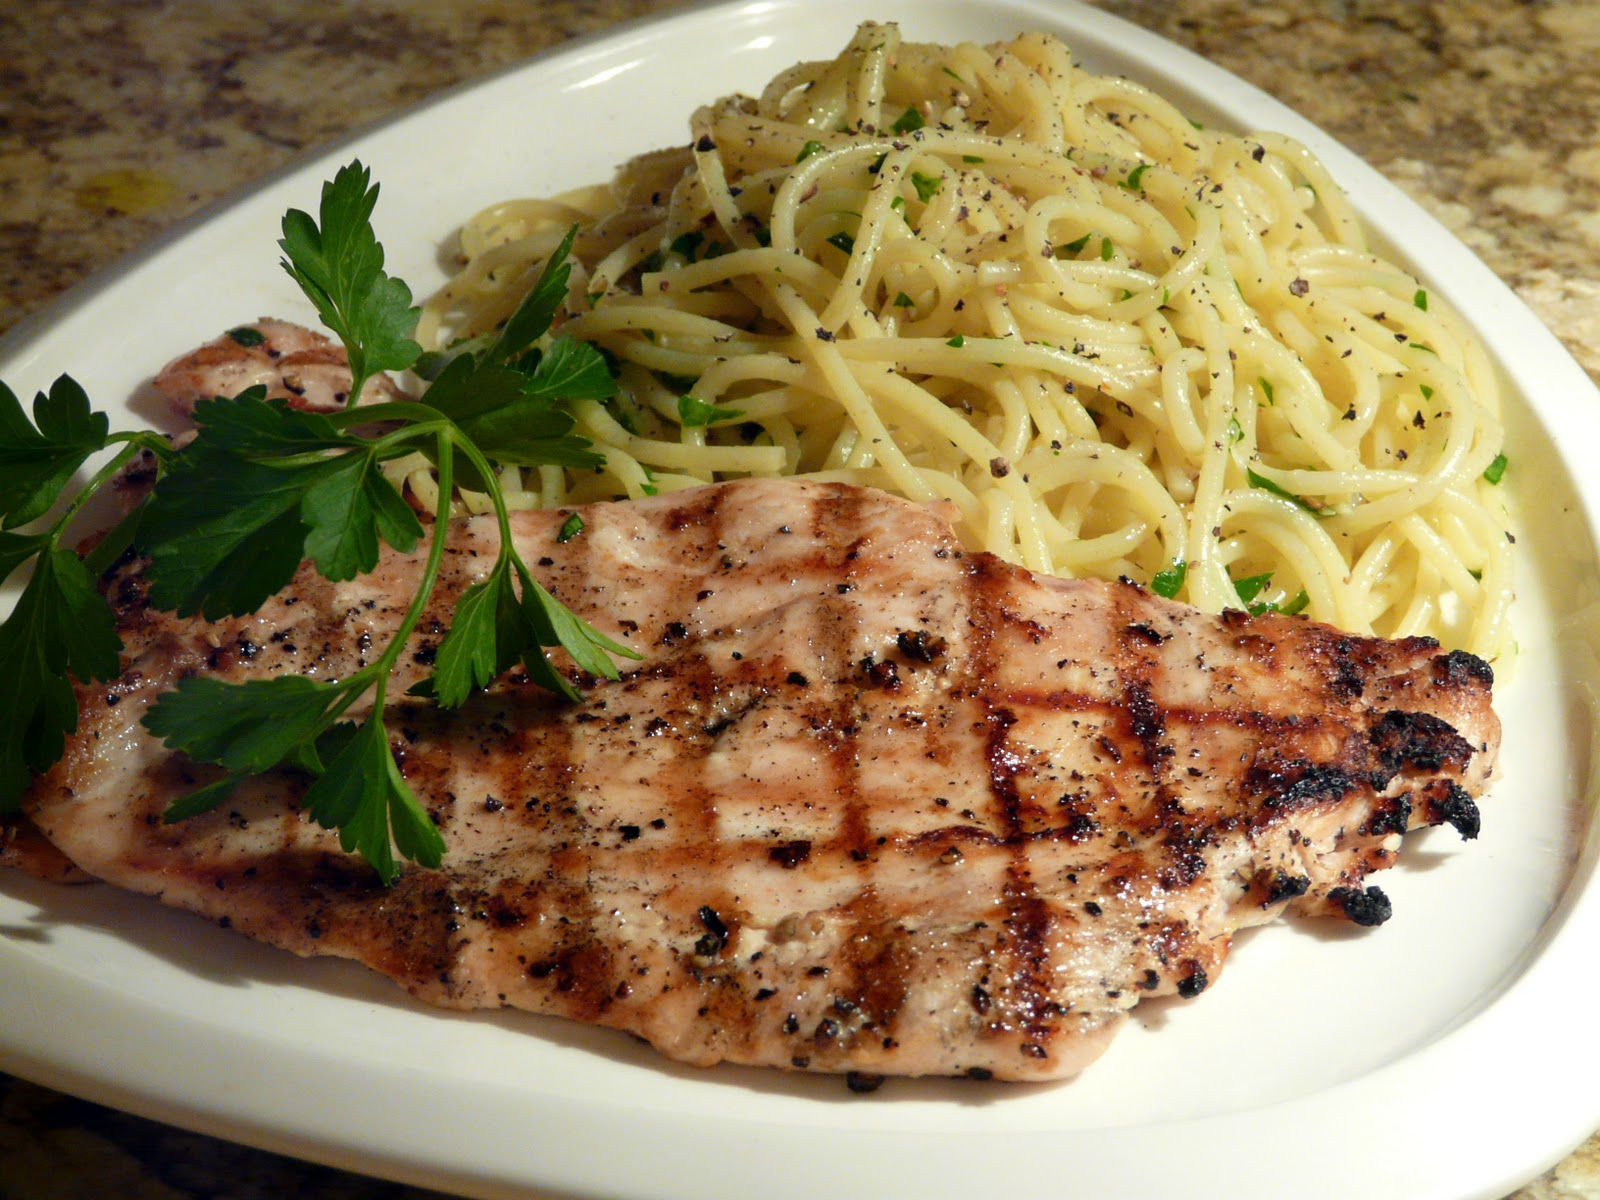 Recipes for chicken breasts and pasta